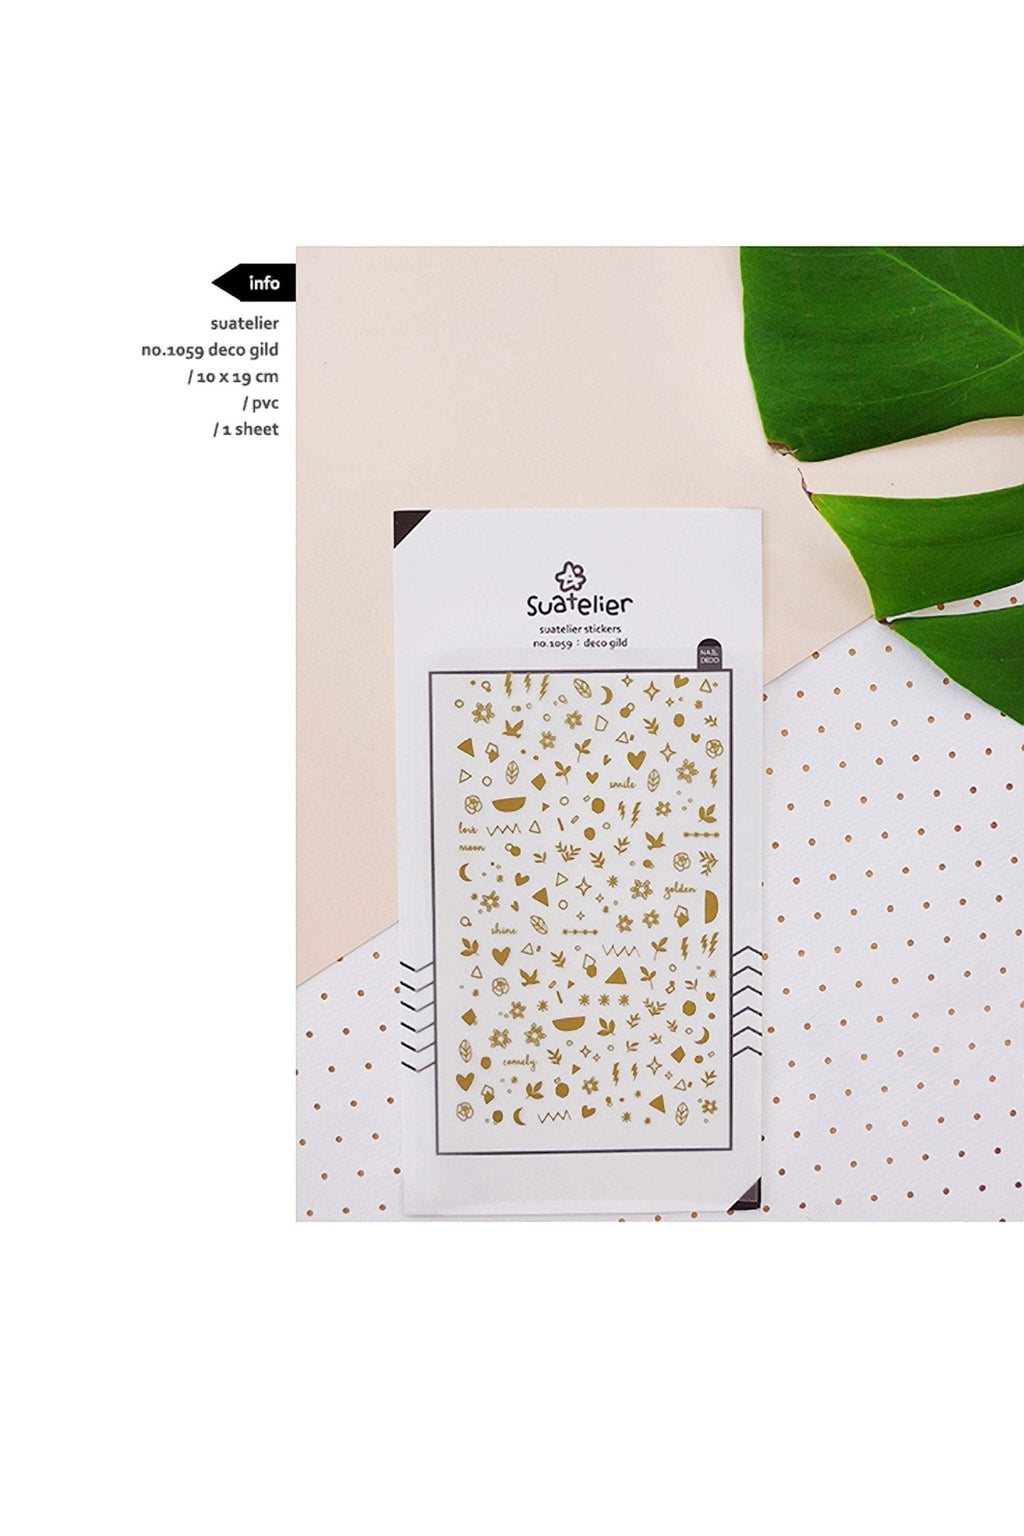 Suatelier Sonia PVC Transparent Stickers 1059 | Deco GIld Tiny Gold Foil Stickers - The Stationery Life!